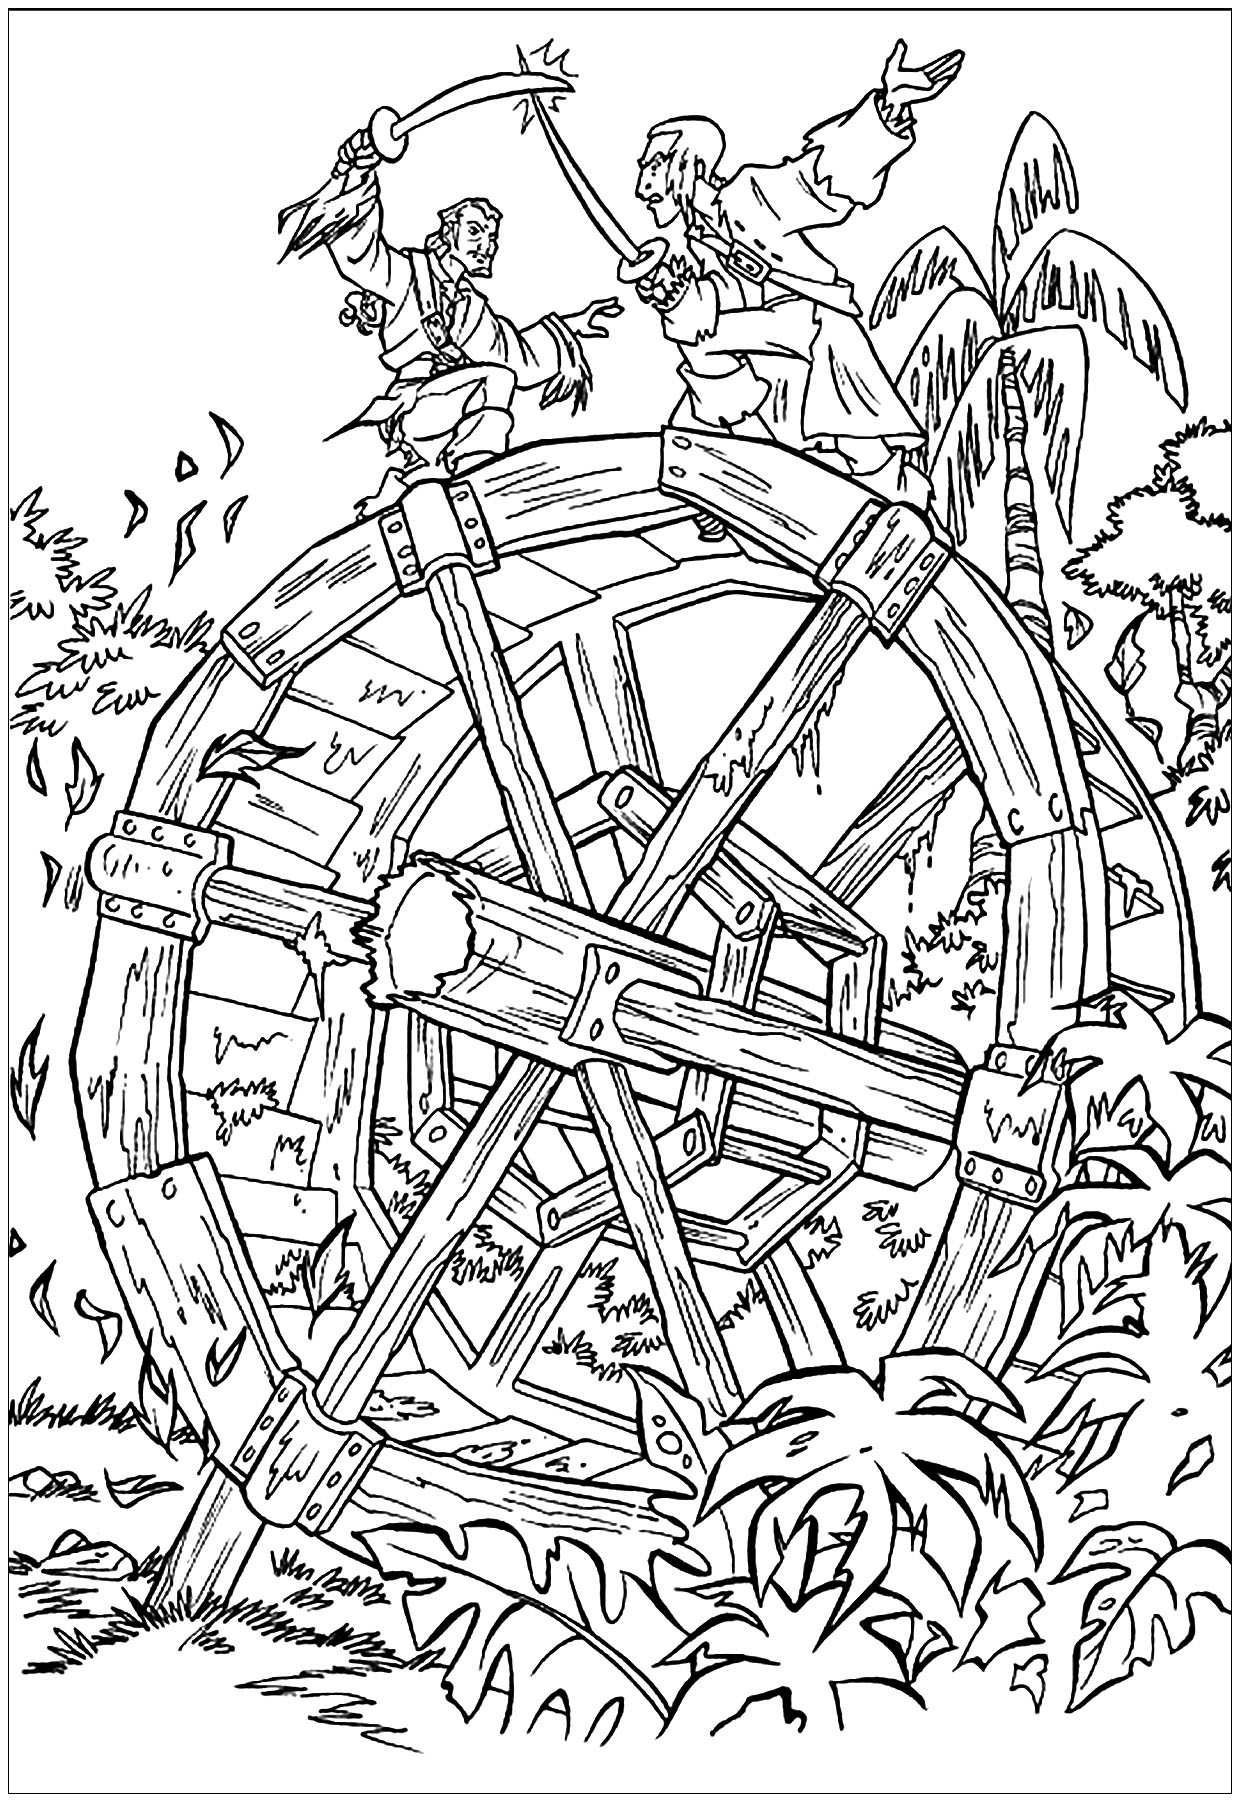 pirate images to color simple pirate ship drawing at getdrawings free download to color pirate images